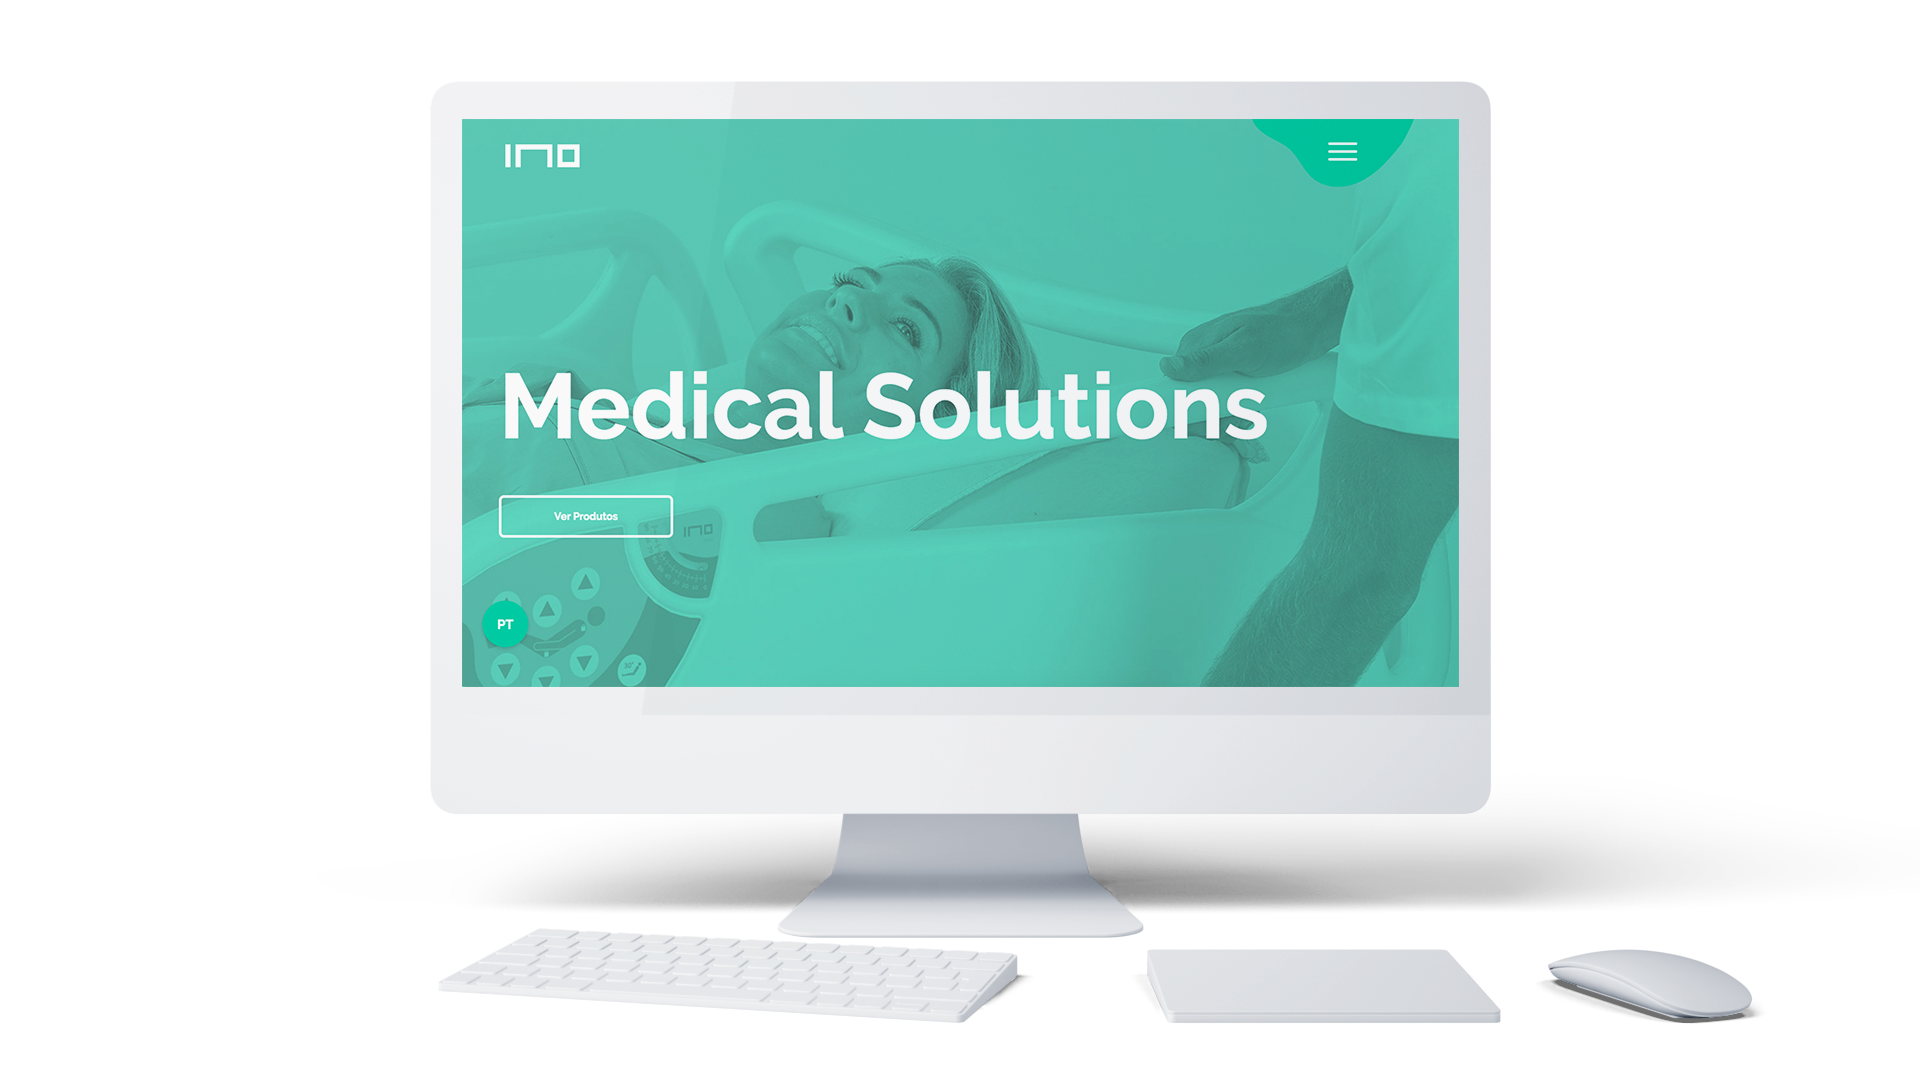 IMO - Medical Solutions